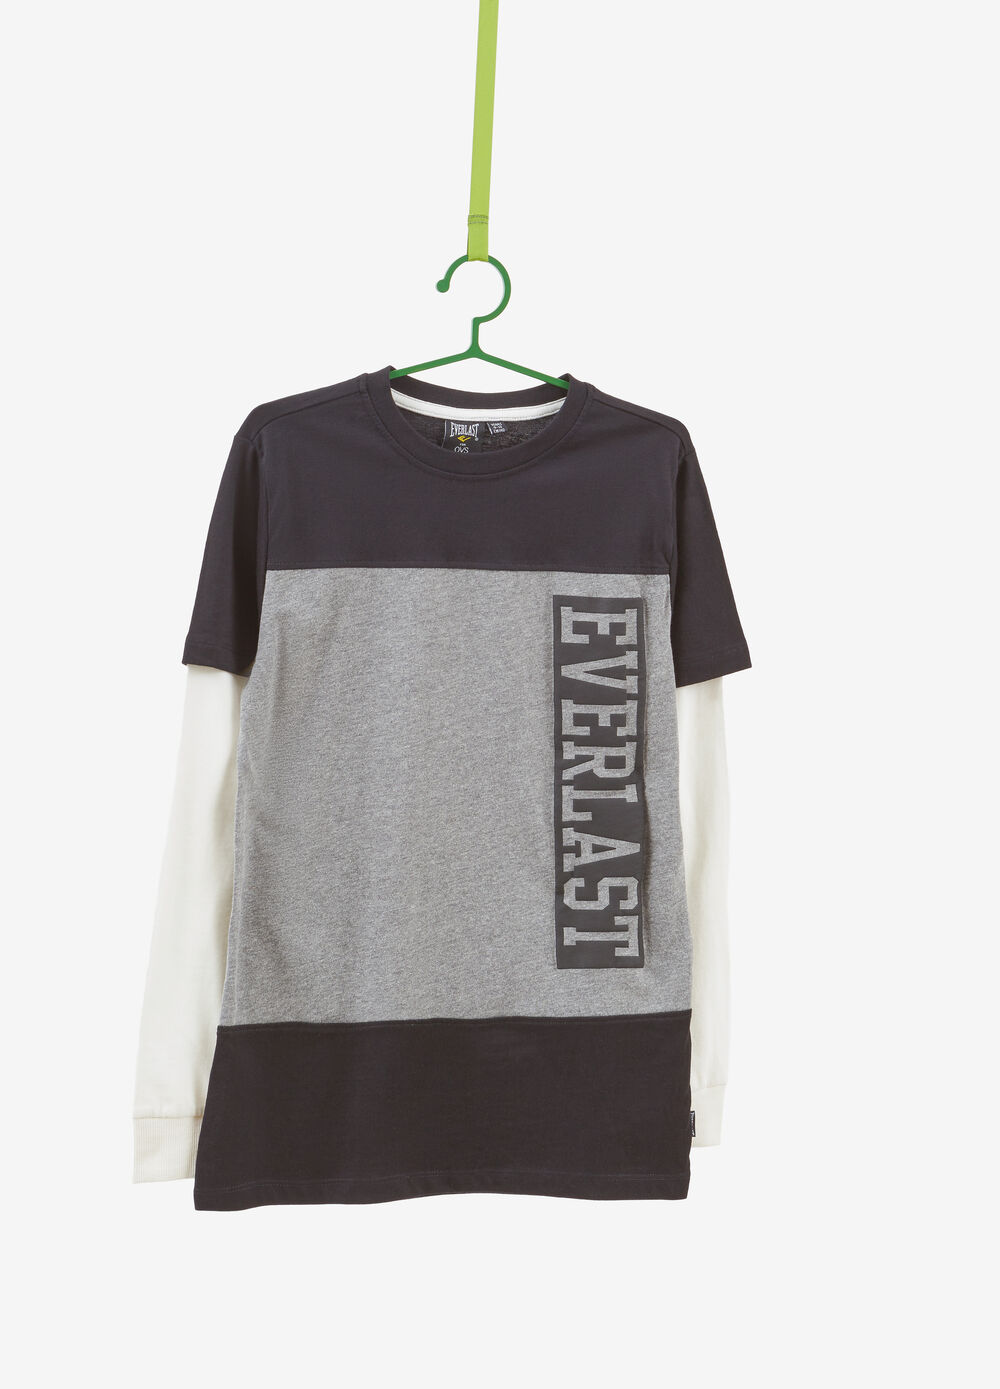 Everlast two-tone T-shirt in 100% cotton